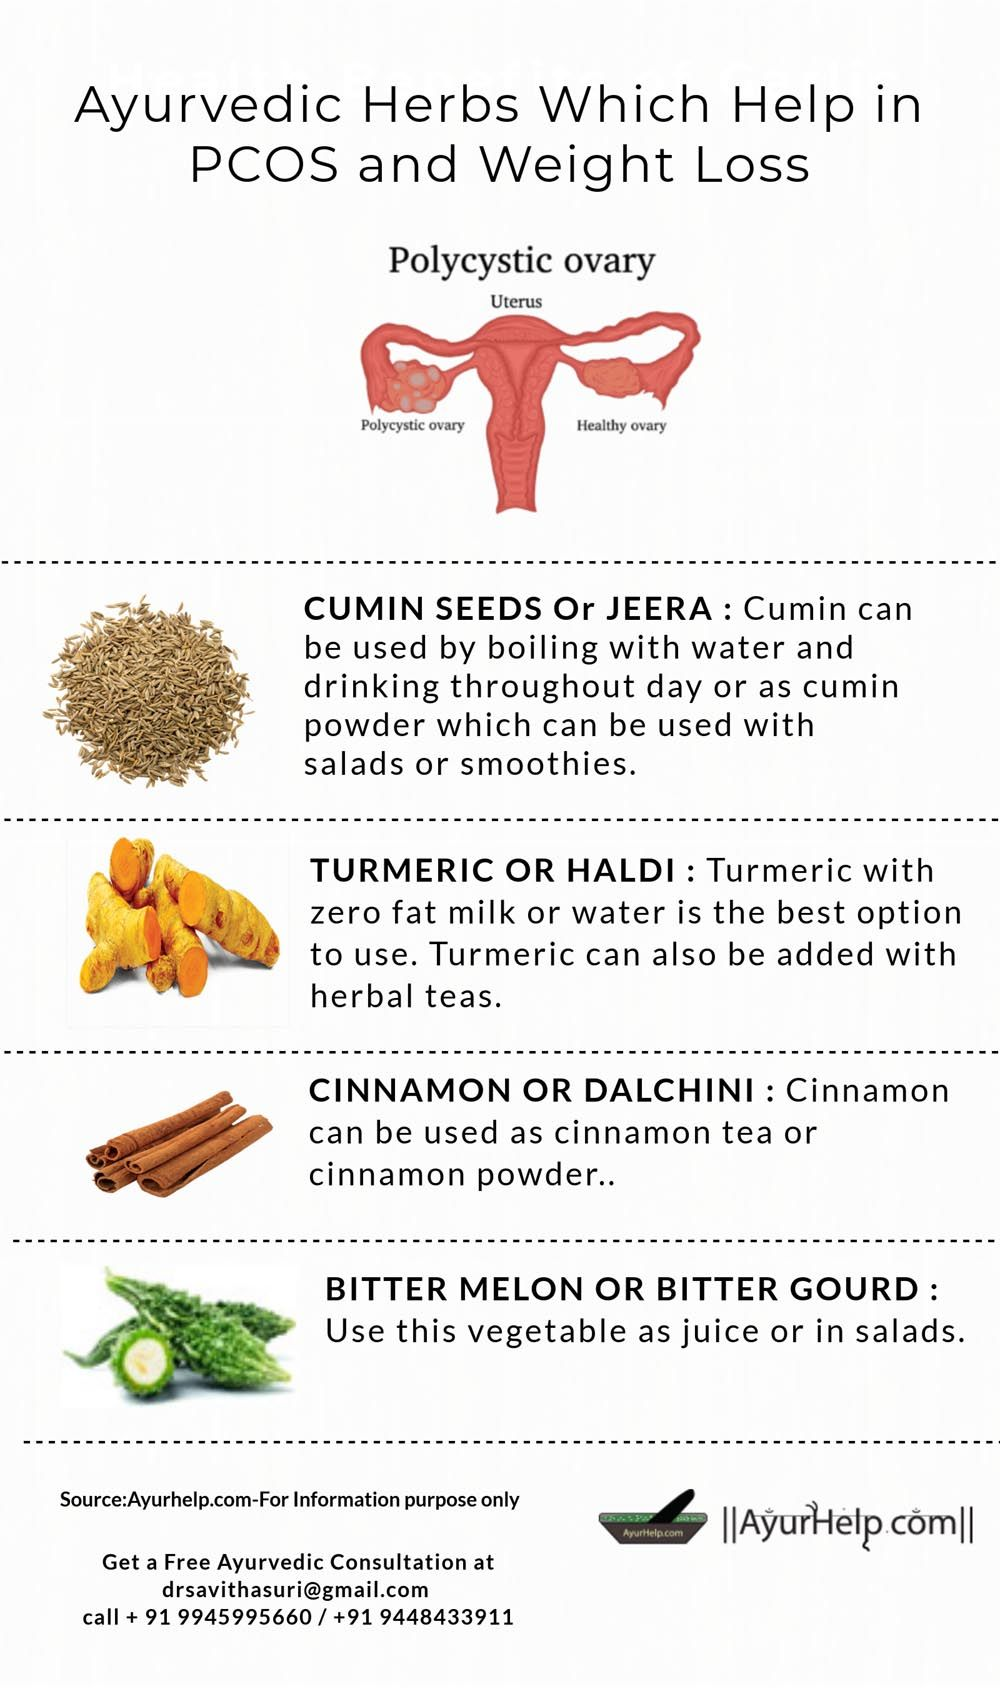 Ayurvedic Kitchen Herbs for PCOS and Weight Loss | Misc